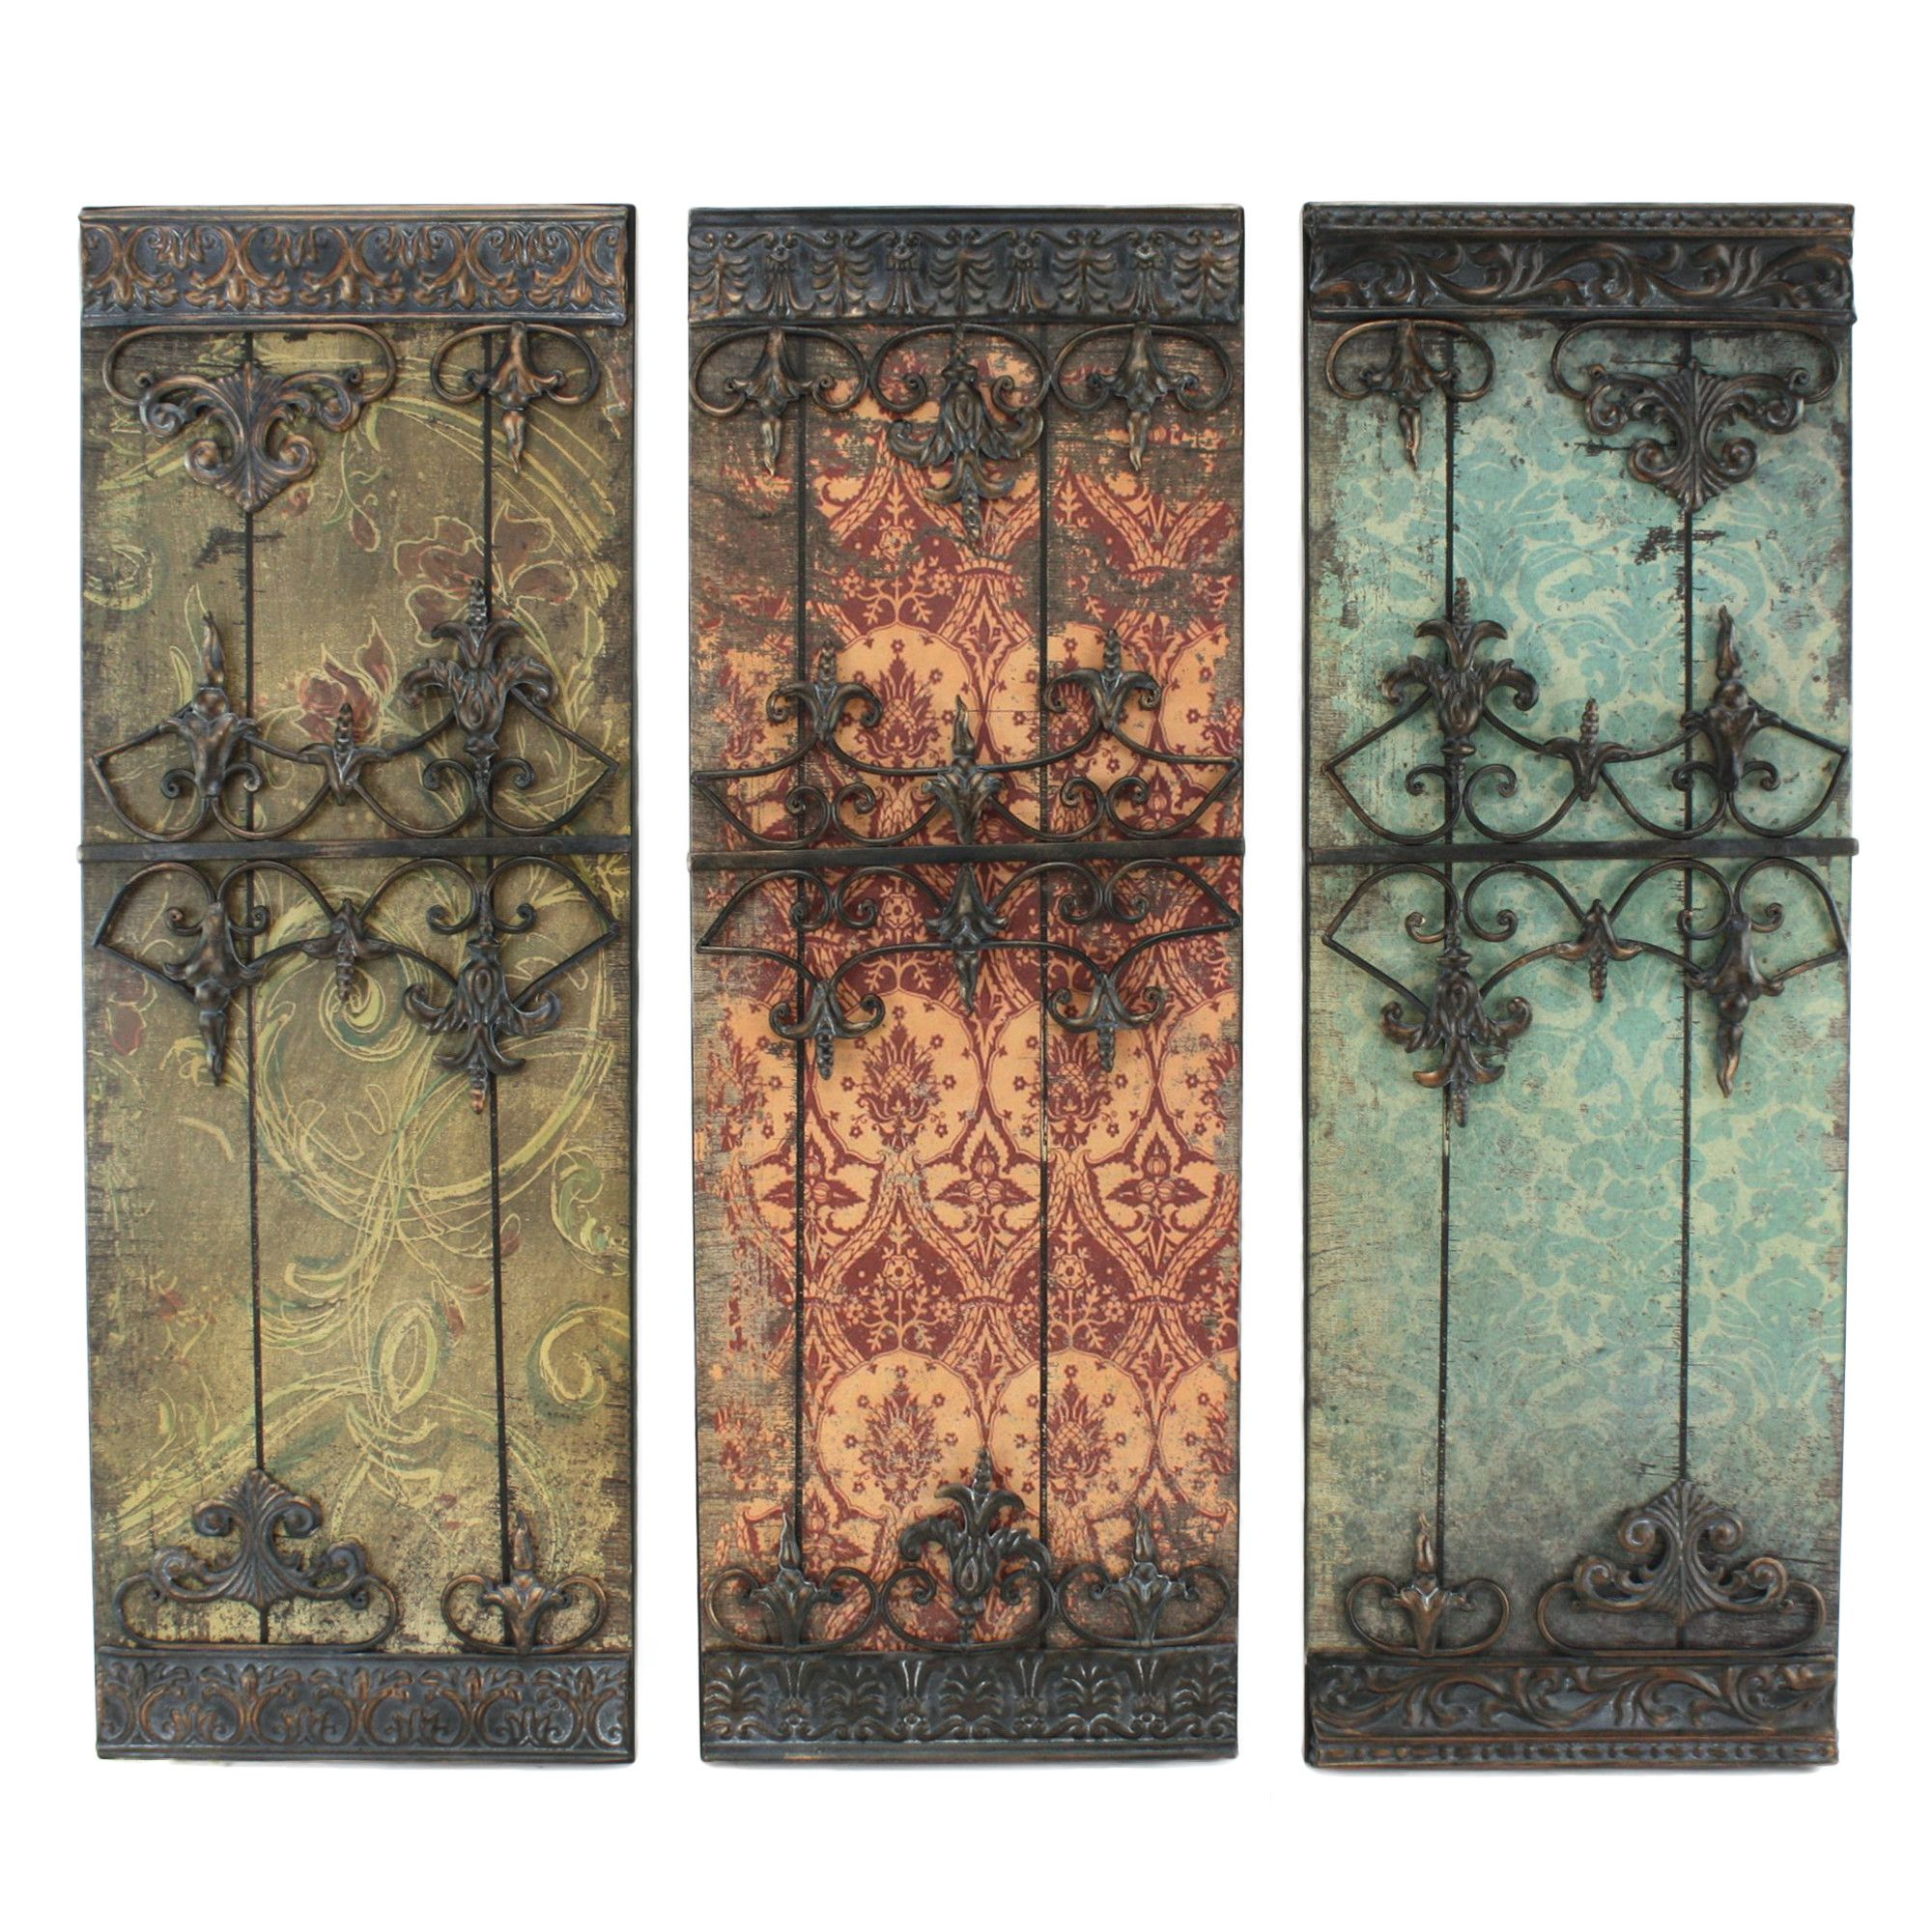 Wayfair Wall Decor natasha wall decor | hang it up! | pinterest | wall decor, rustic